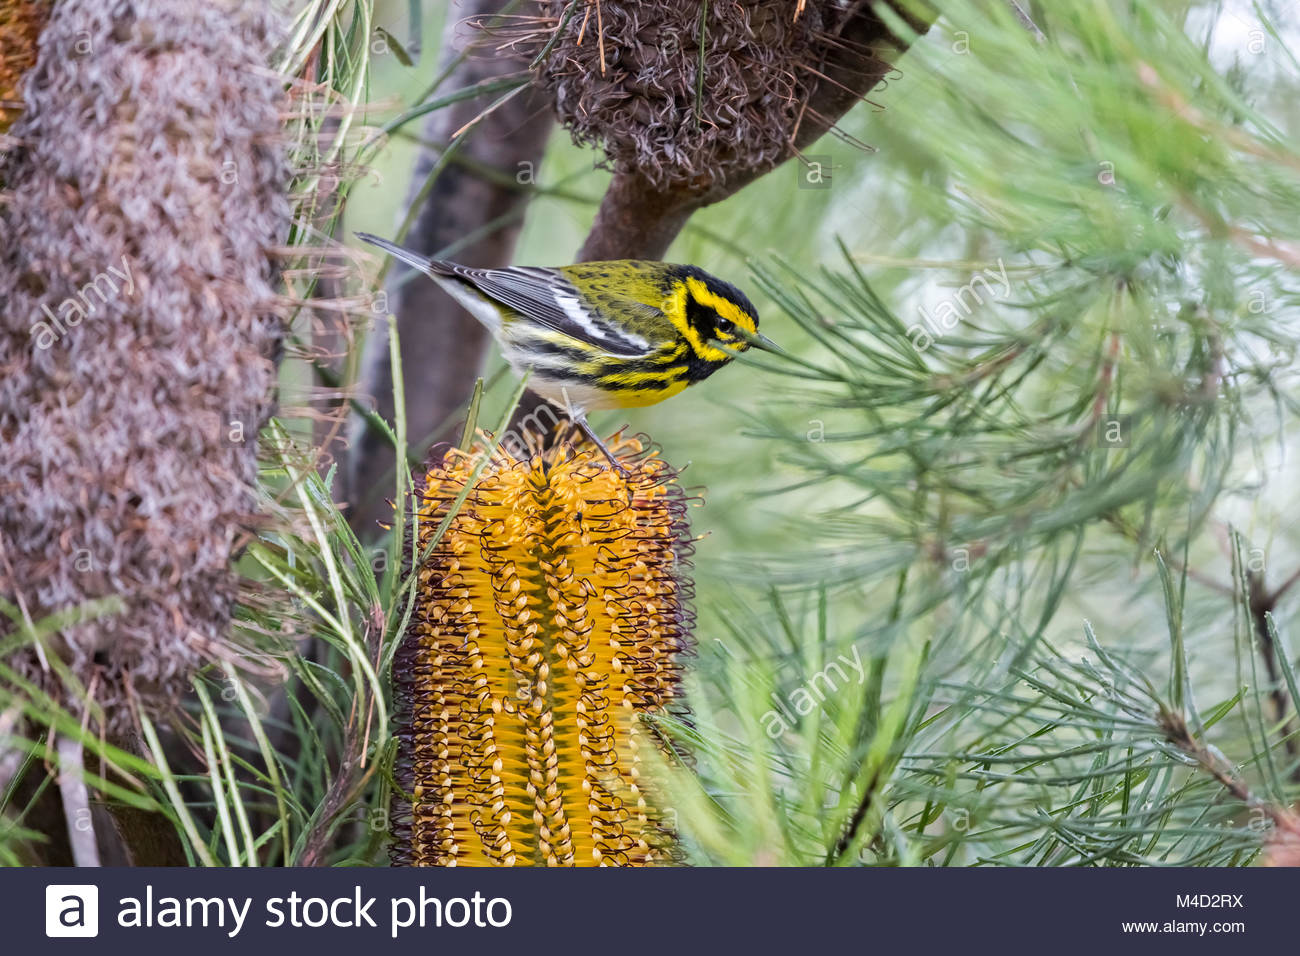 Townsend's Warbler (Setophaga townsendi) perched on Hairpin Banskia (Banksia spinulosa). - Stock Image